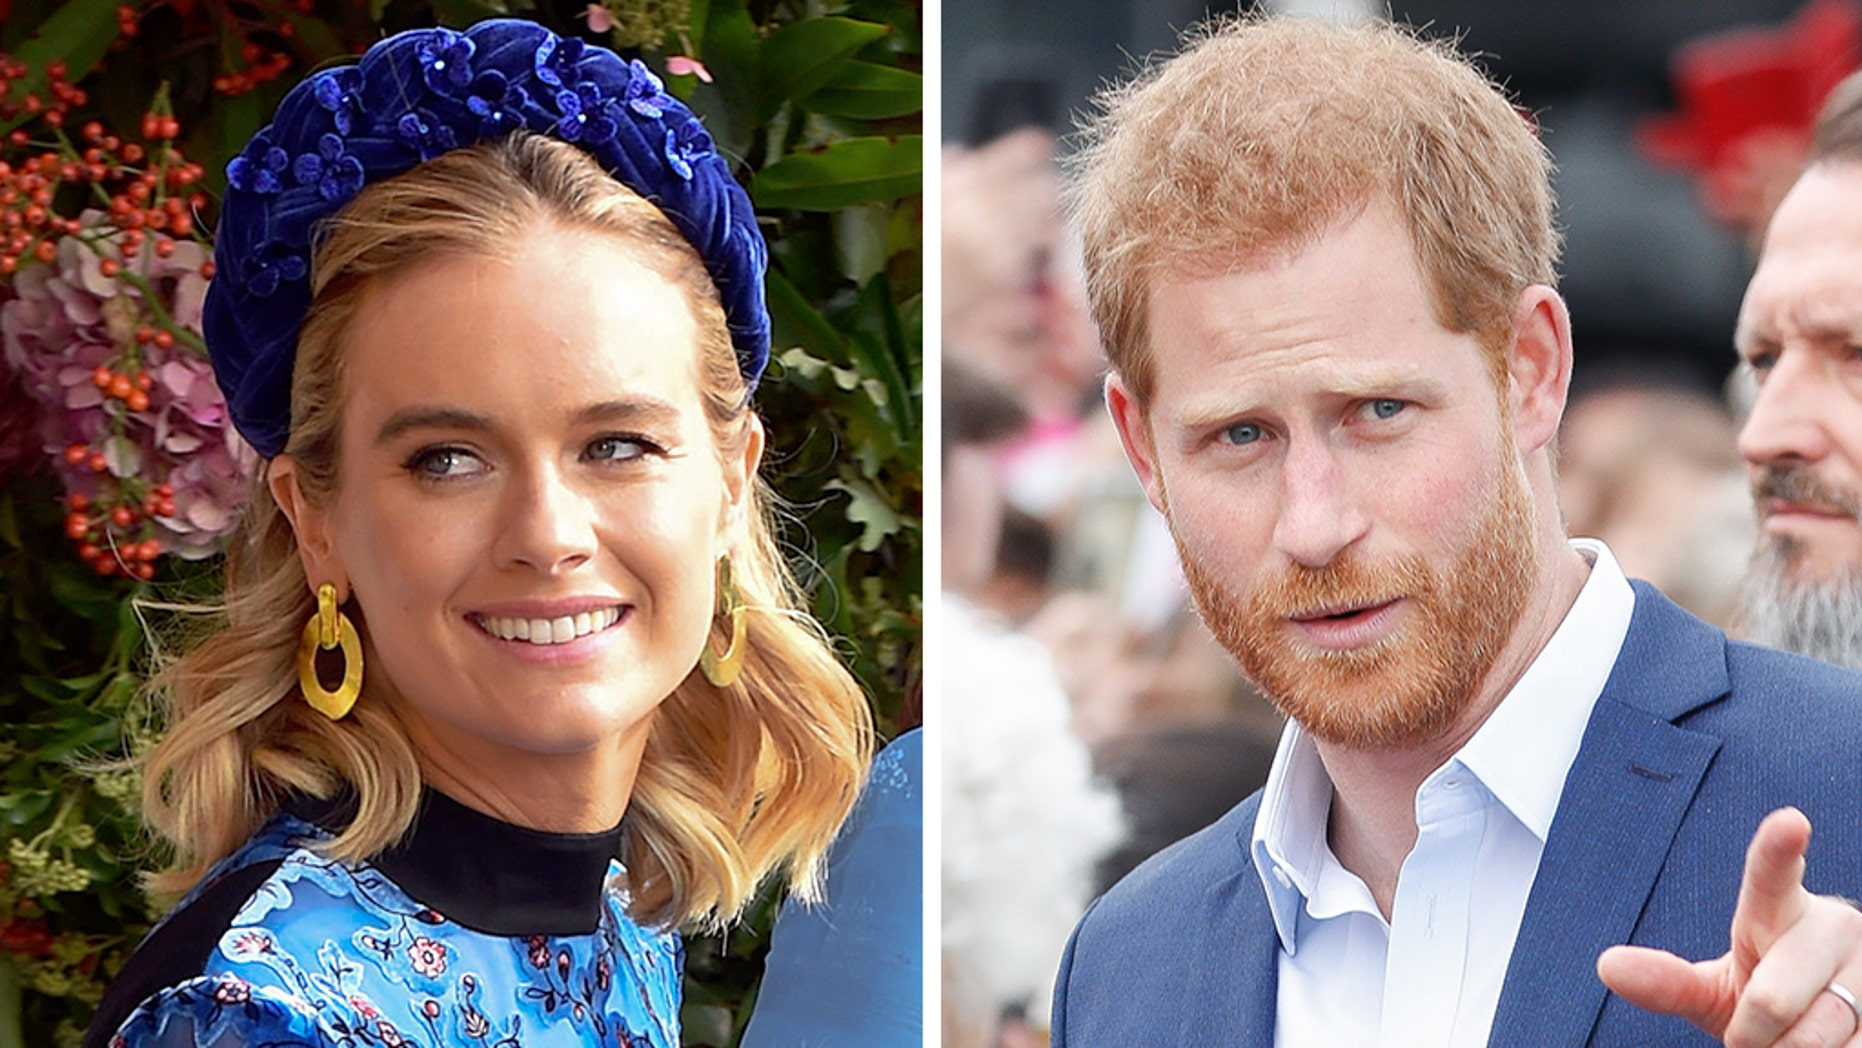 Prince Harry's ex-girlfriend Cressida Bonas is set to appear in a six-part series on British channel ITV.